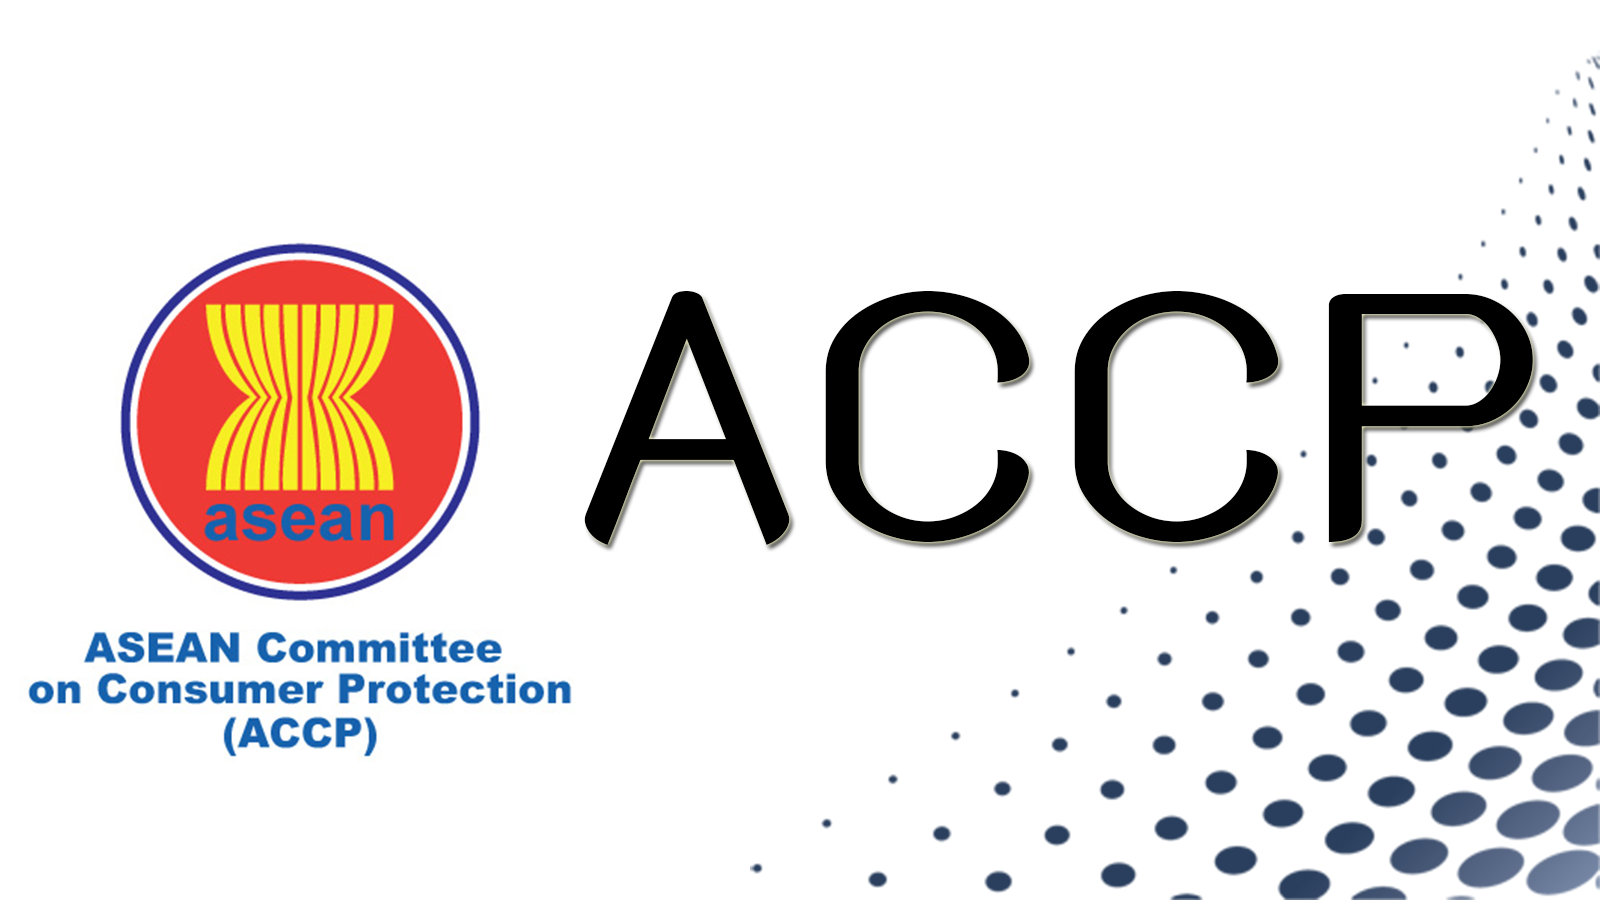 ACCP Asean Committee on Consumer Protection